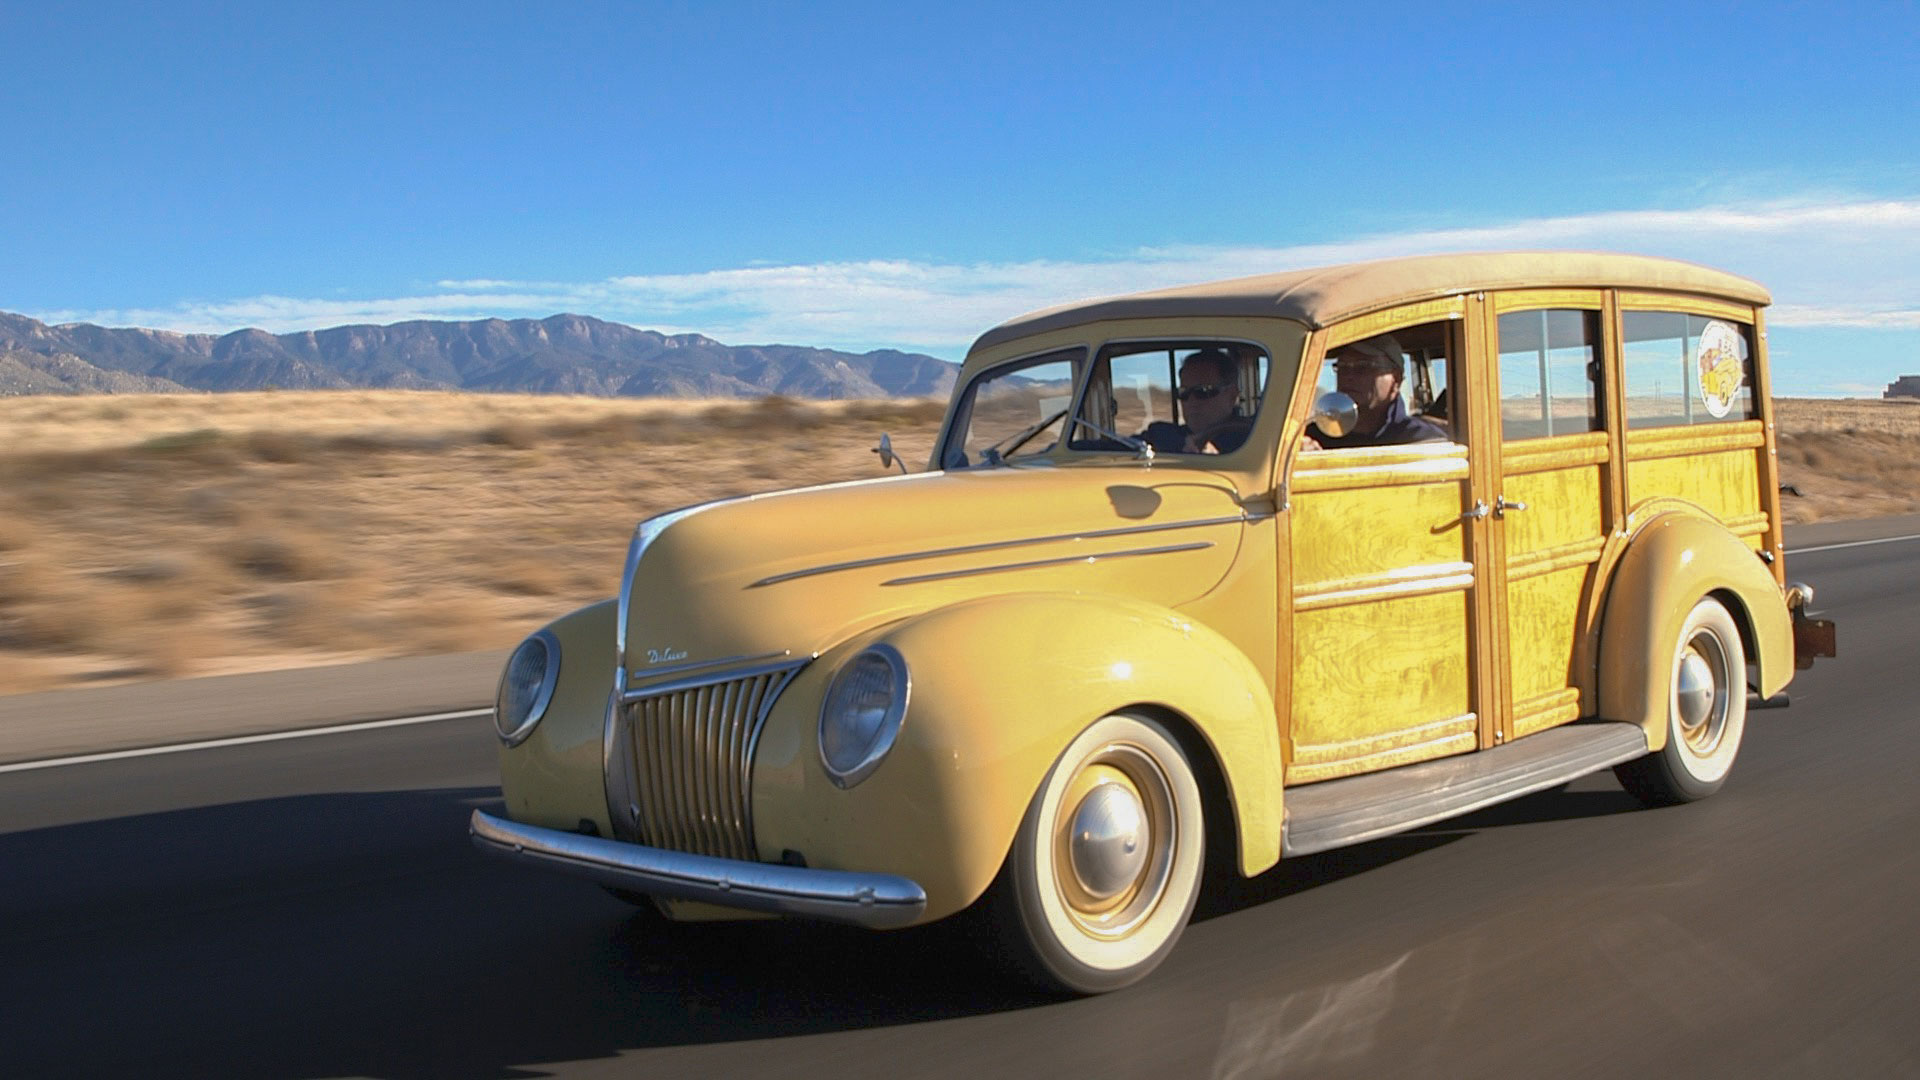 Tom Cotter's 1939 Ford Woodie Wagon